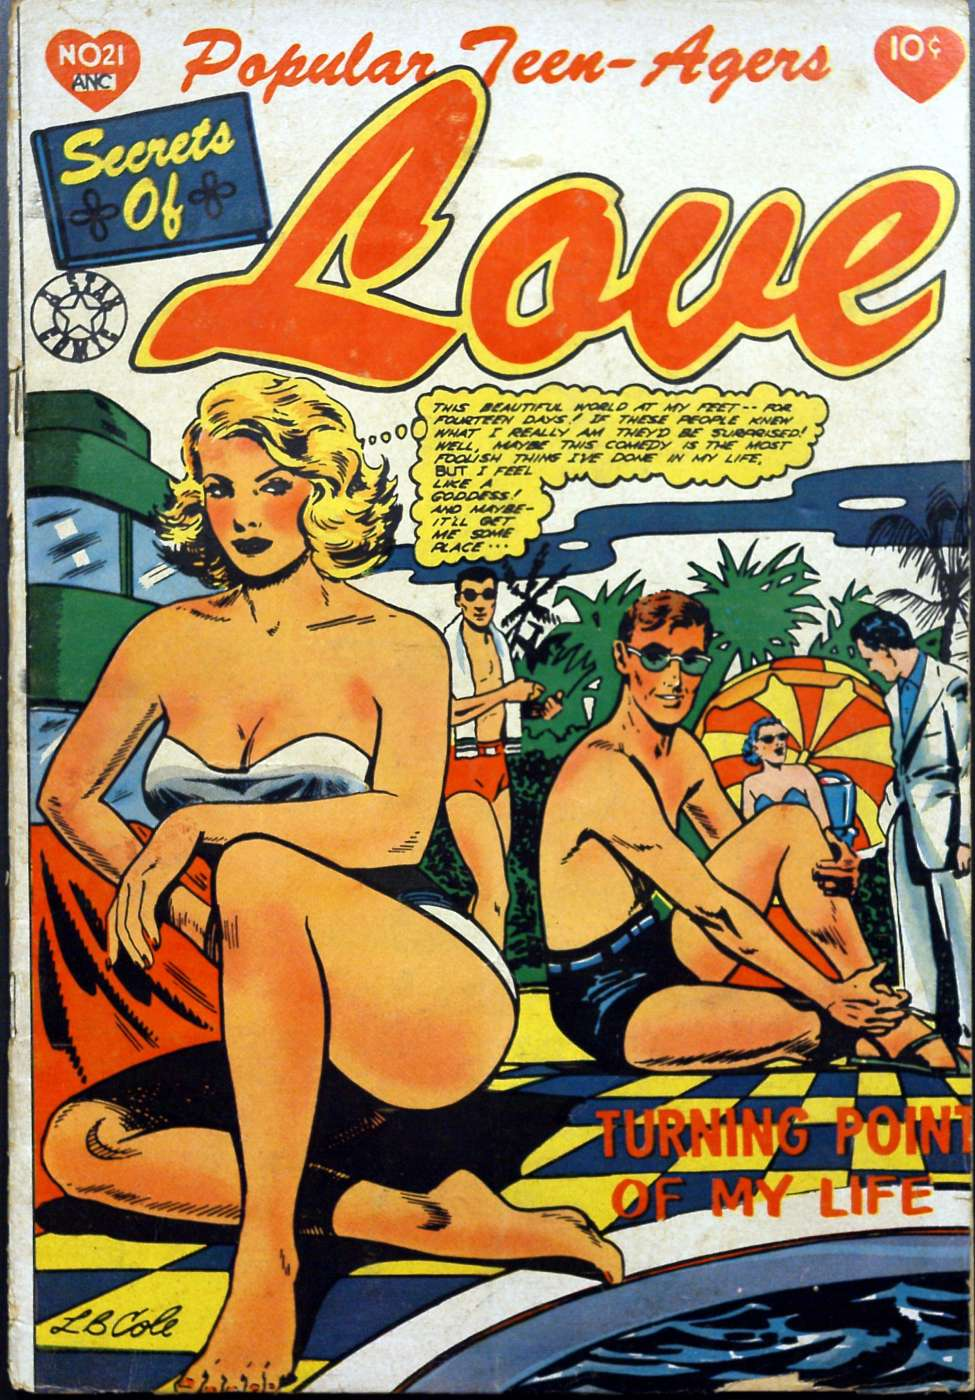 Comic Book Cover For Popular Teen-Agers #21